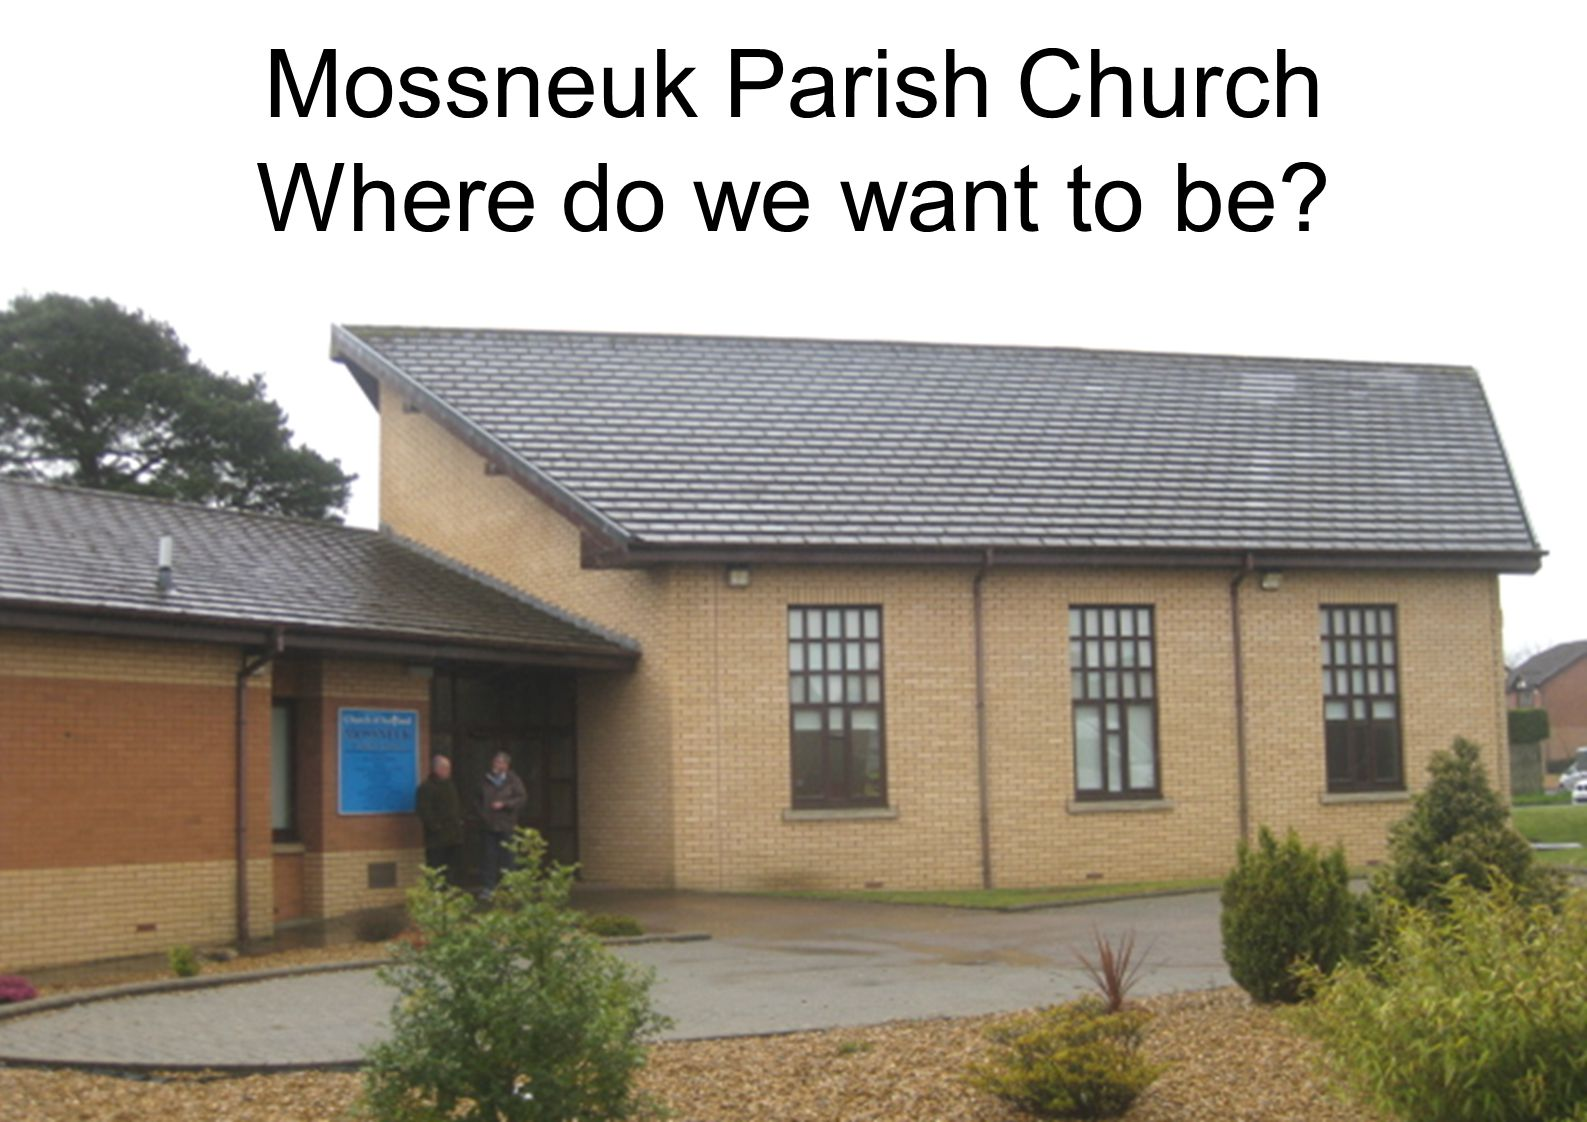 Mossneuk Parish Church Where do we want to be